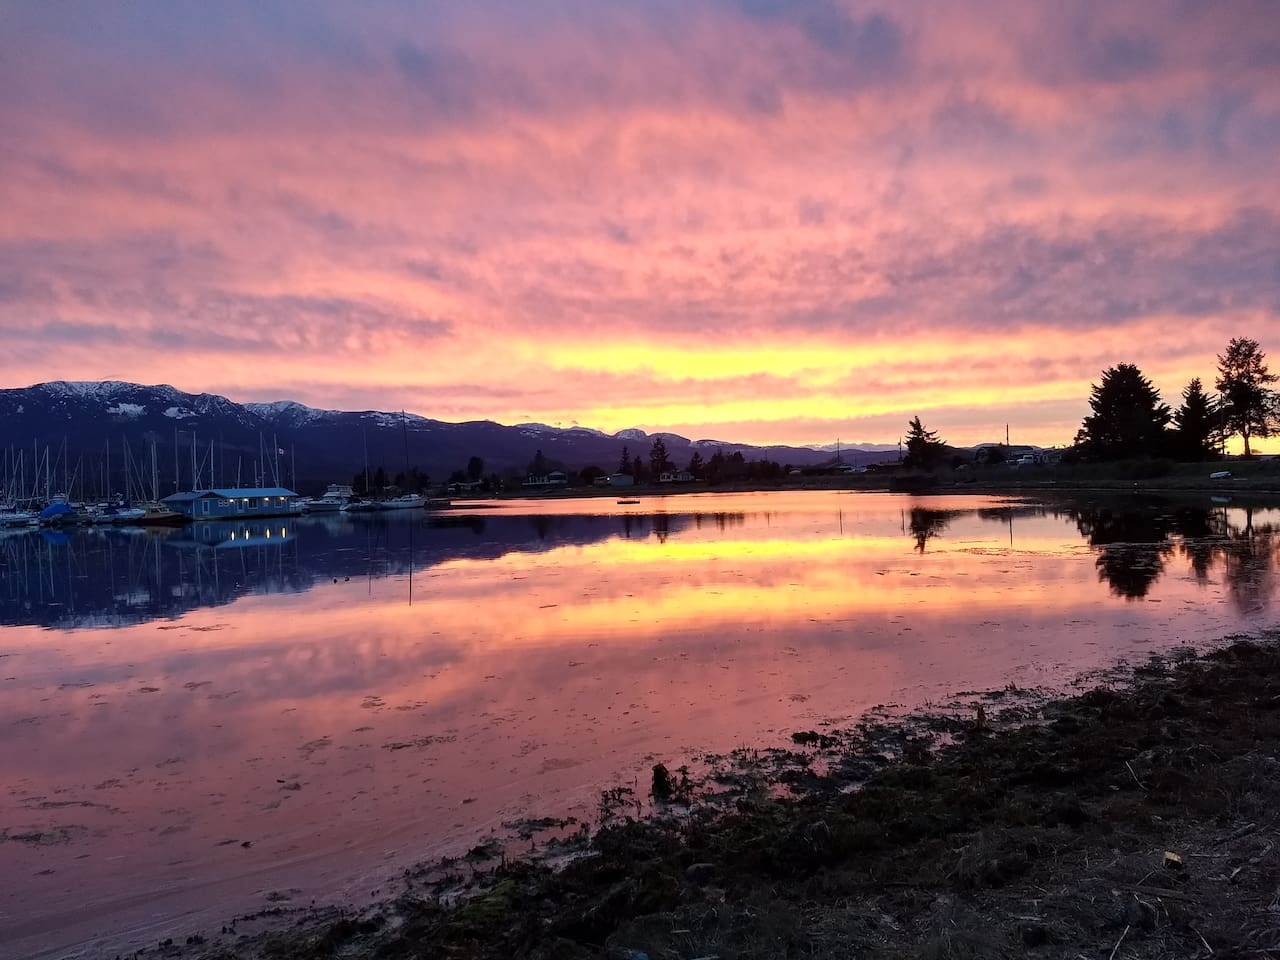 Enjoy magnificent sunsets over the western mountains